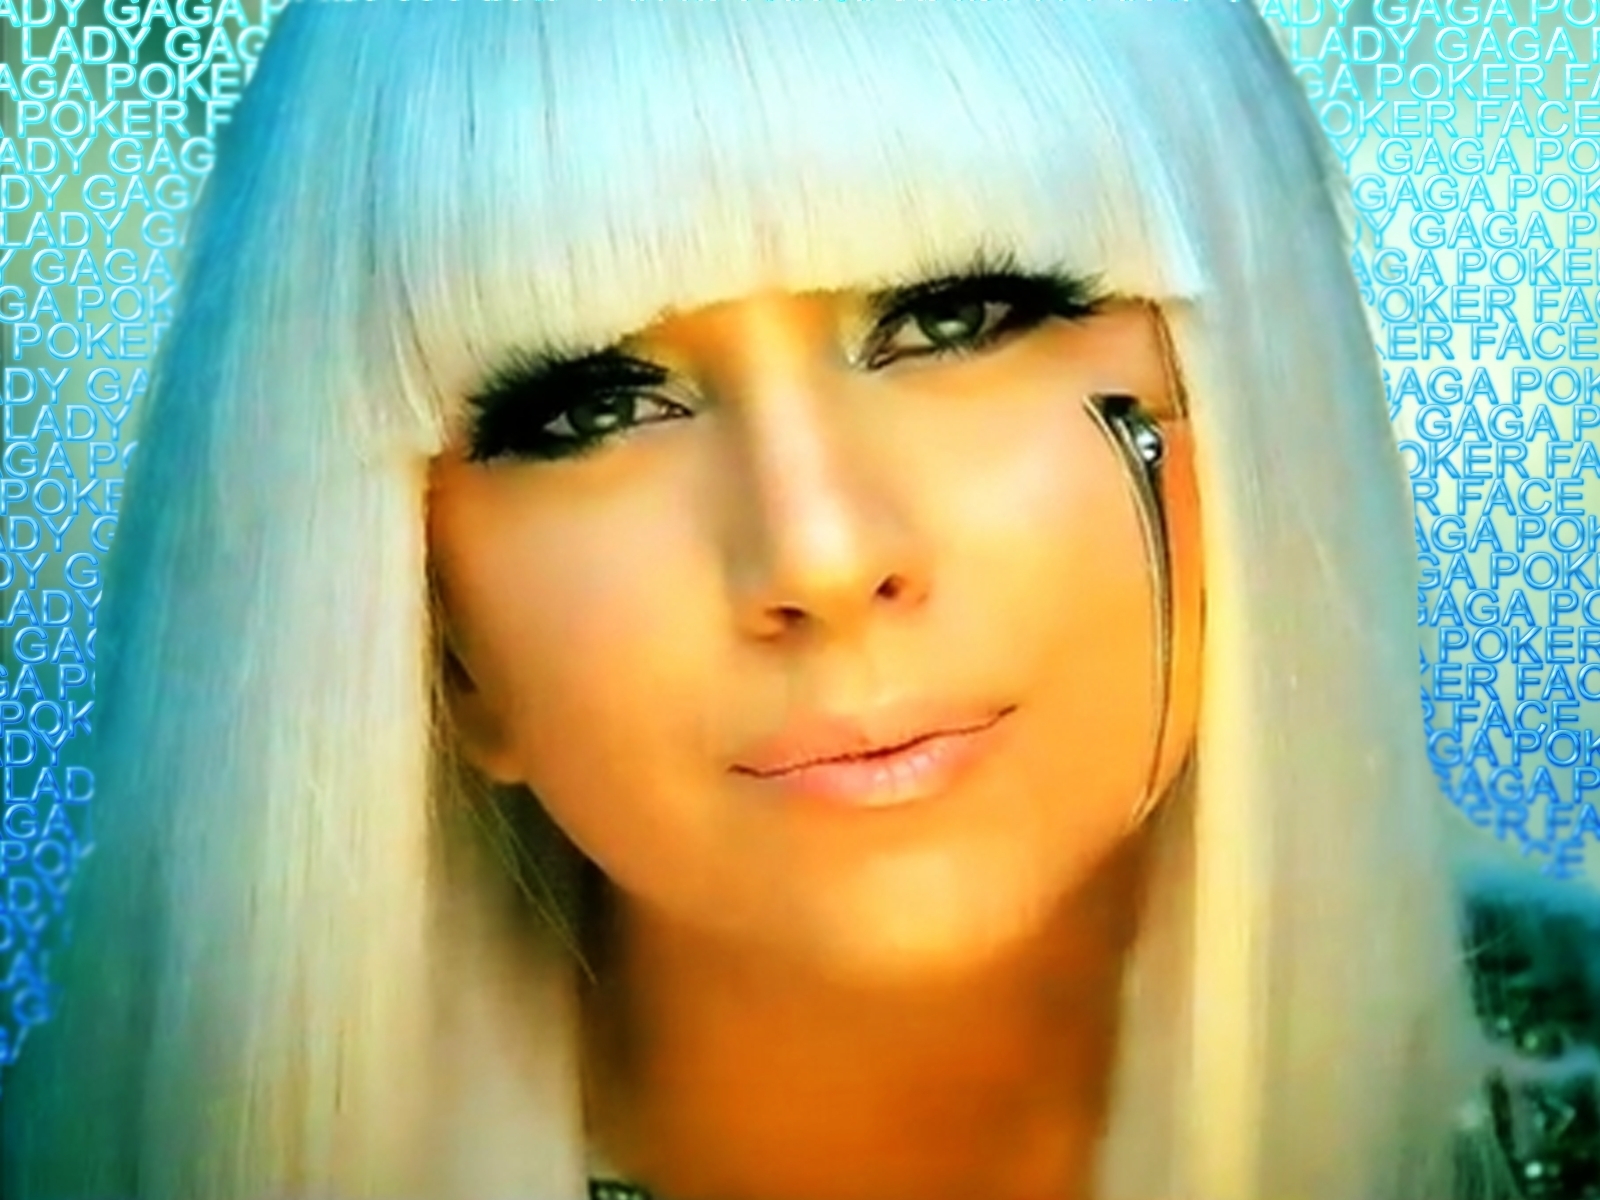 http://images2.fanpop.com/images/photos/3300000/Lady-GaGa-lady-gaga-3355925-1600-1200.jpg